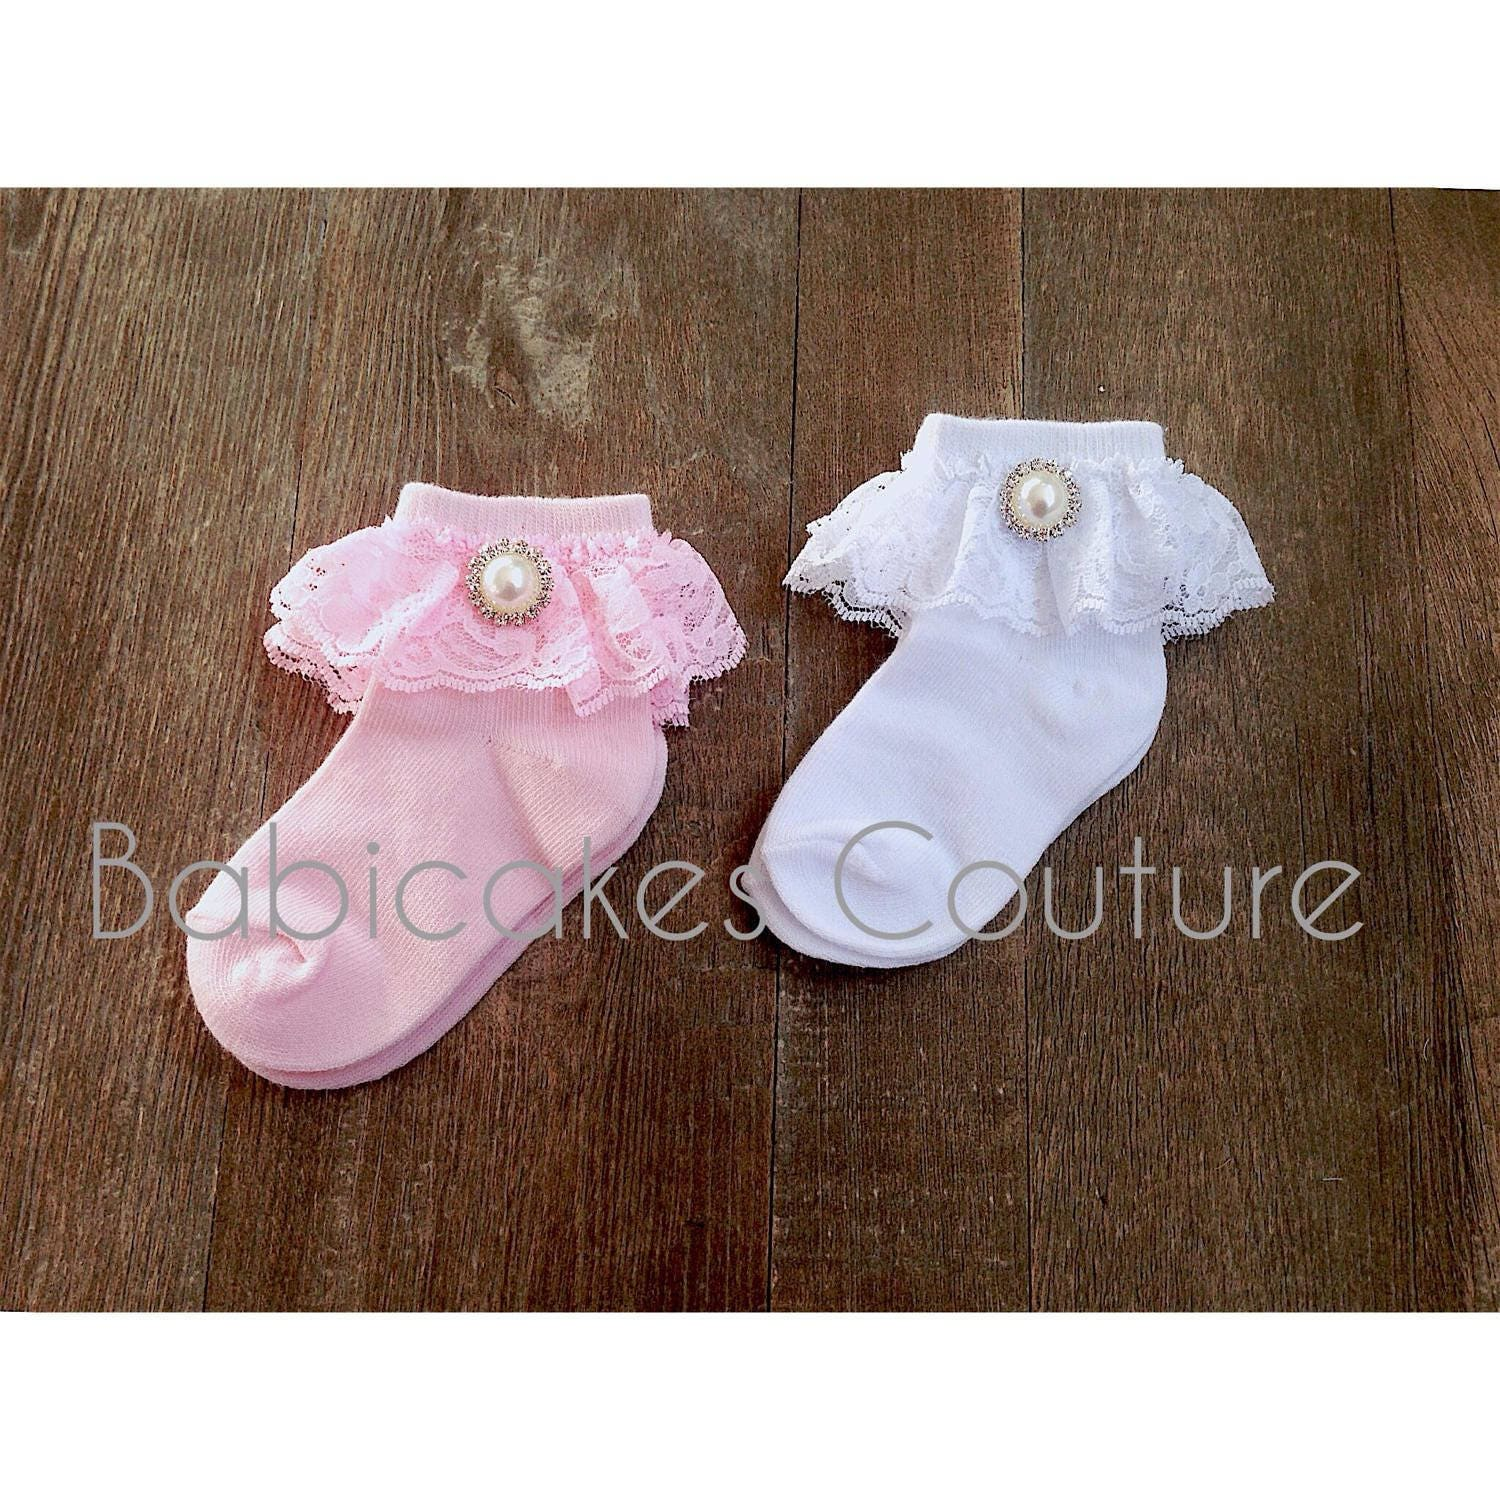 Fancy Baby Socks Baby Girl Socks Lace Baby Socks Special